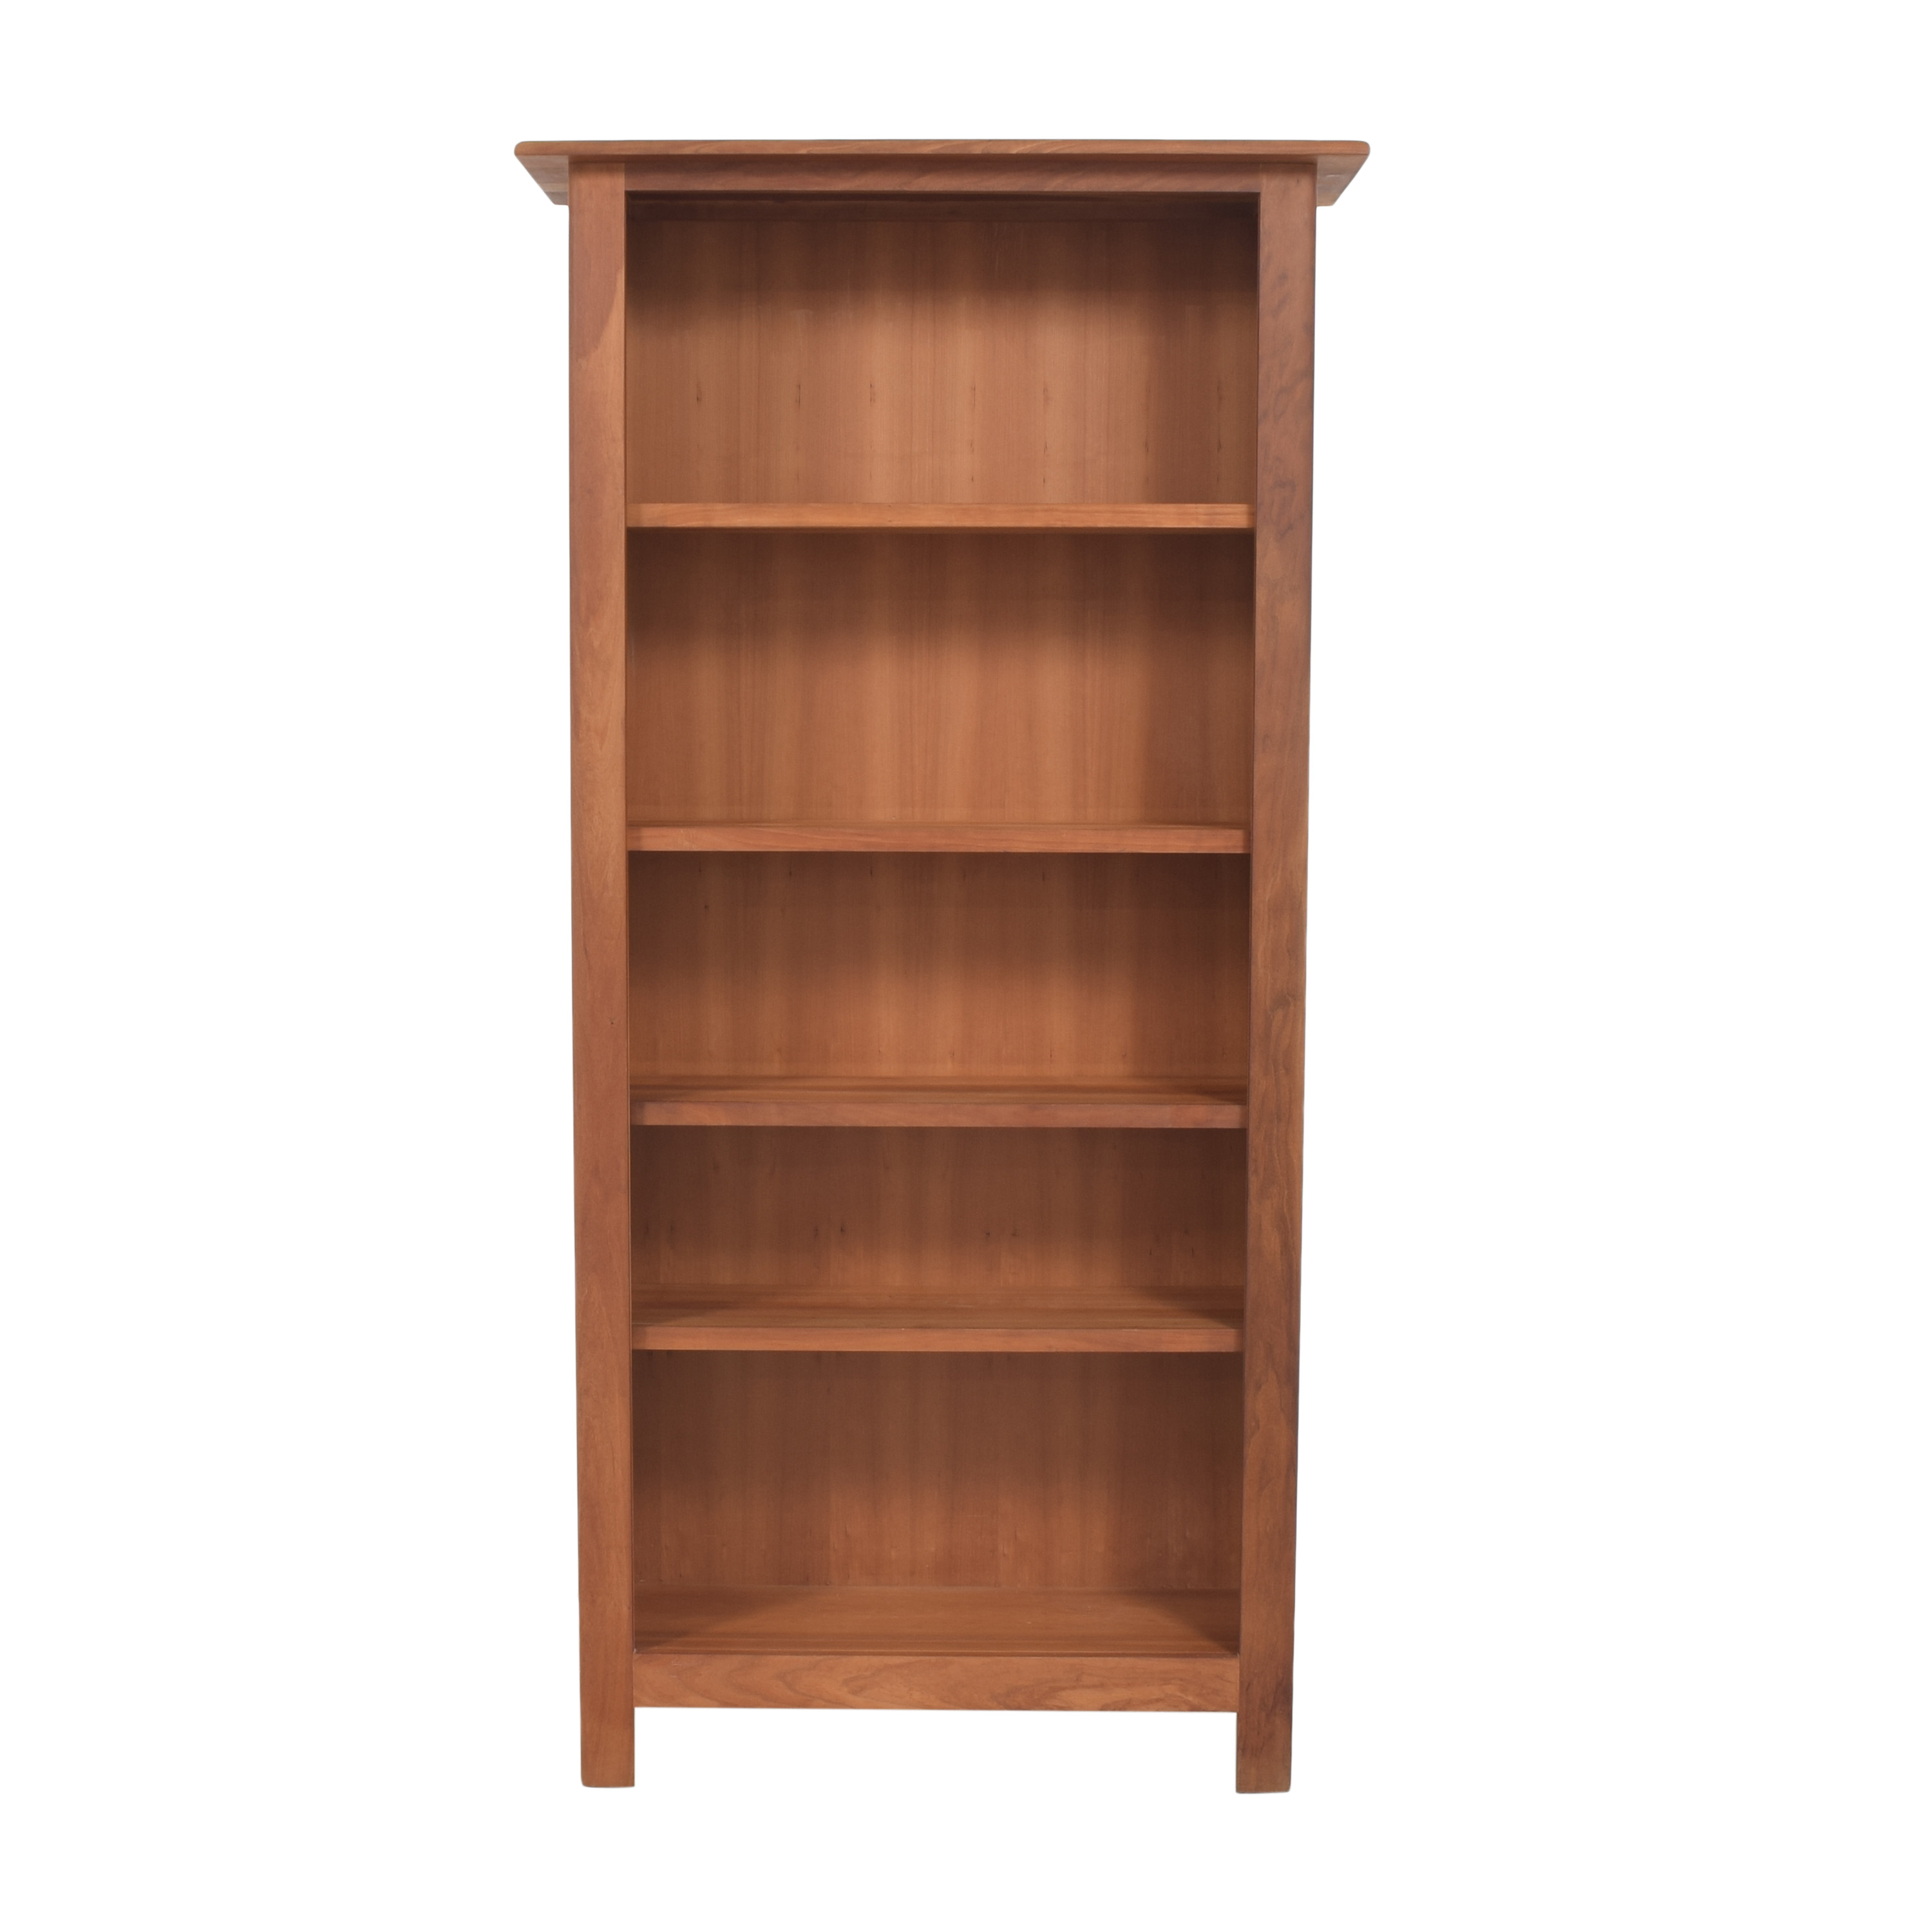 Scott Jordan Furniture Scott Jordan Furniture Tall Bookcase on sale